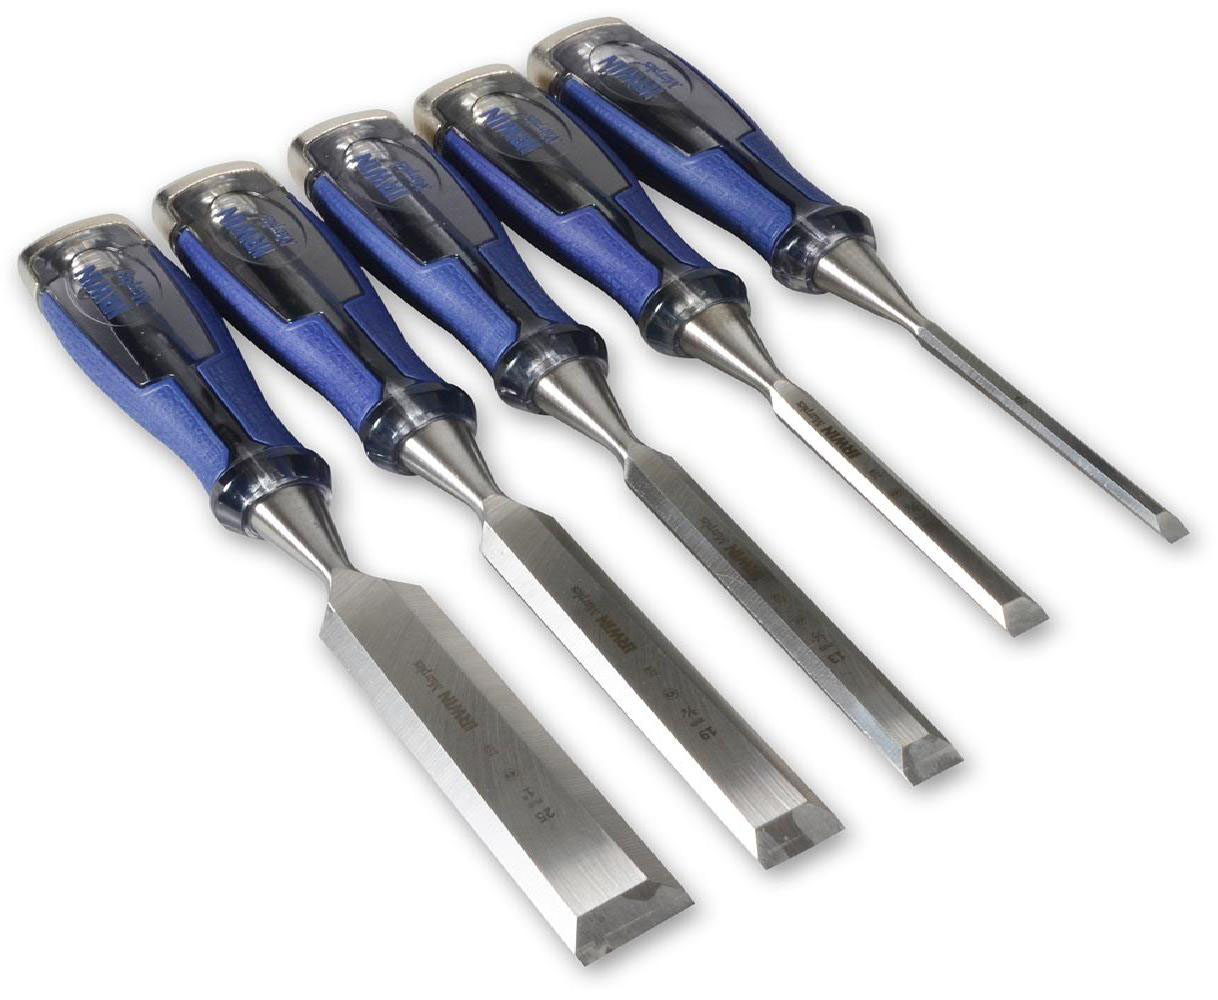 IRWIN 10503421 / M750 - High Impact Chisel Set 5Pcs; 6-25mm